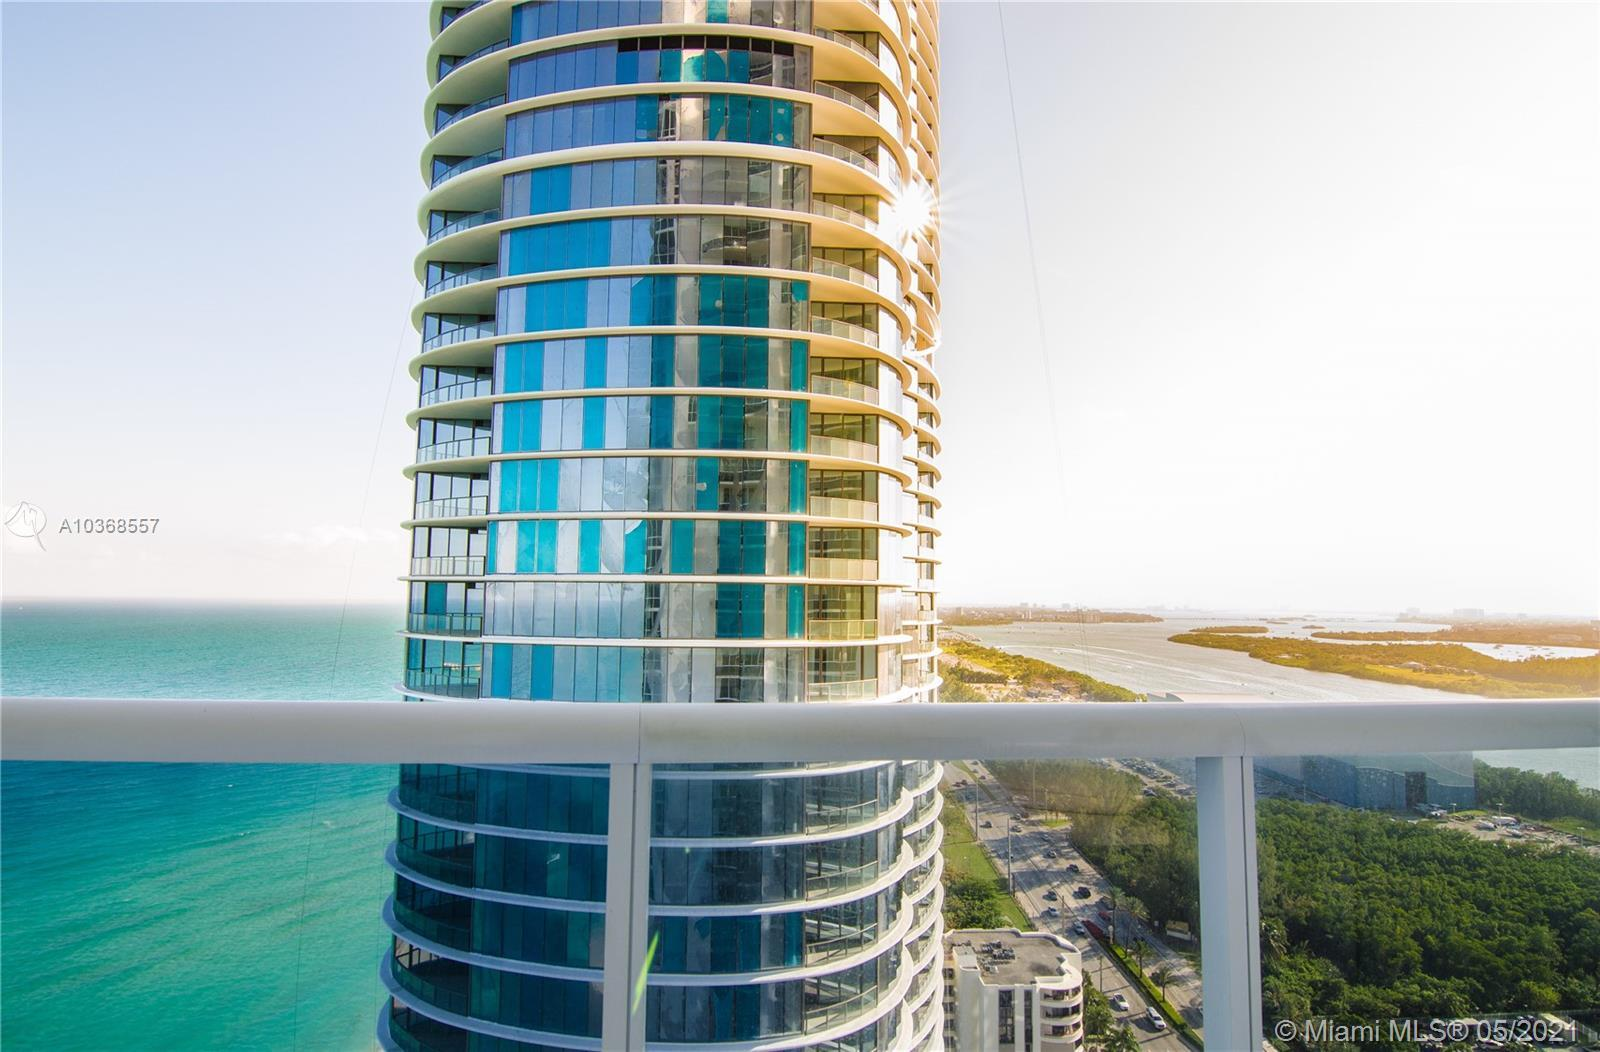 FULLY FURNISHED APARTMENT IN TRUMP TOWERS III IN THE PRESTIGIOUS SUNNY ISLES BEACH. UNIT FEATURES 2